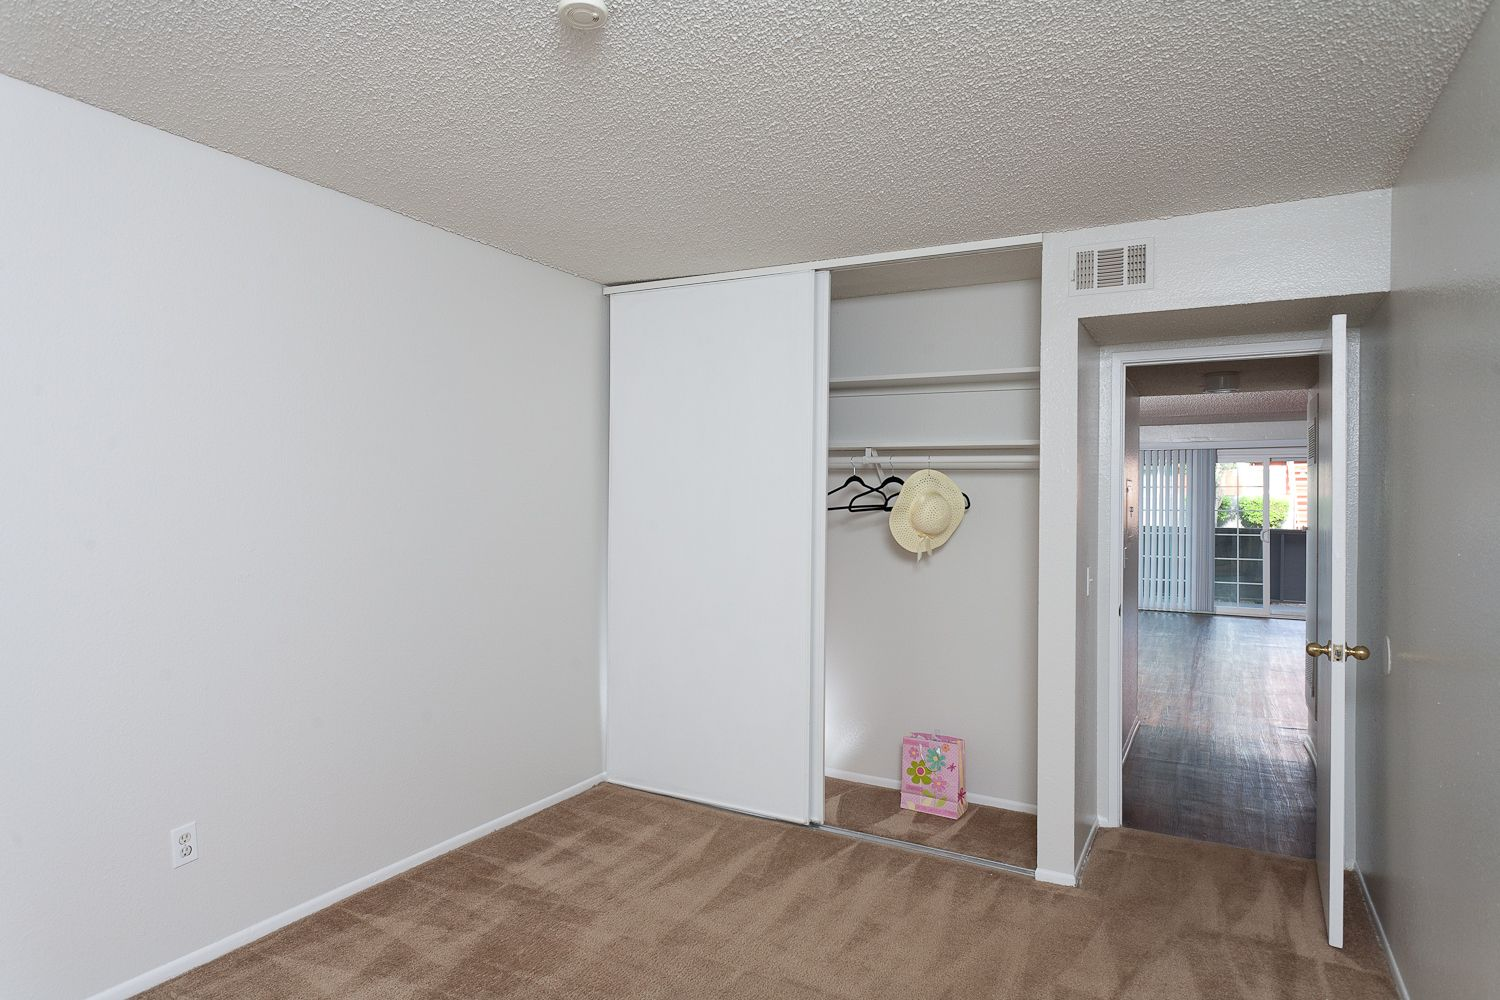 Ample living and storage space at COUNTRYWOOD APARTMENTS IN REDLANDS, CA  #AMCLiving #LiveHappy #ApartmentIdeas #ApartmentsDecor #Apartmentliving #home #dreamhome #renovate #renovations